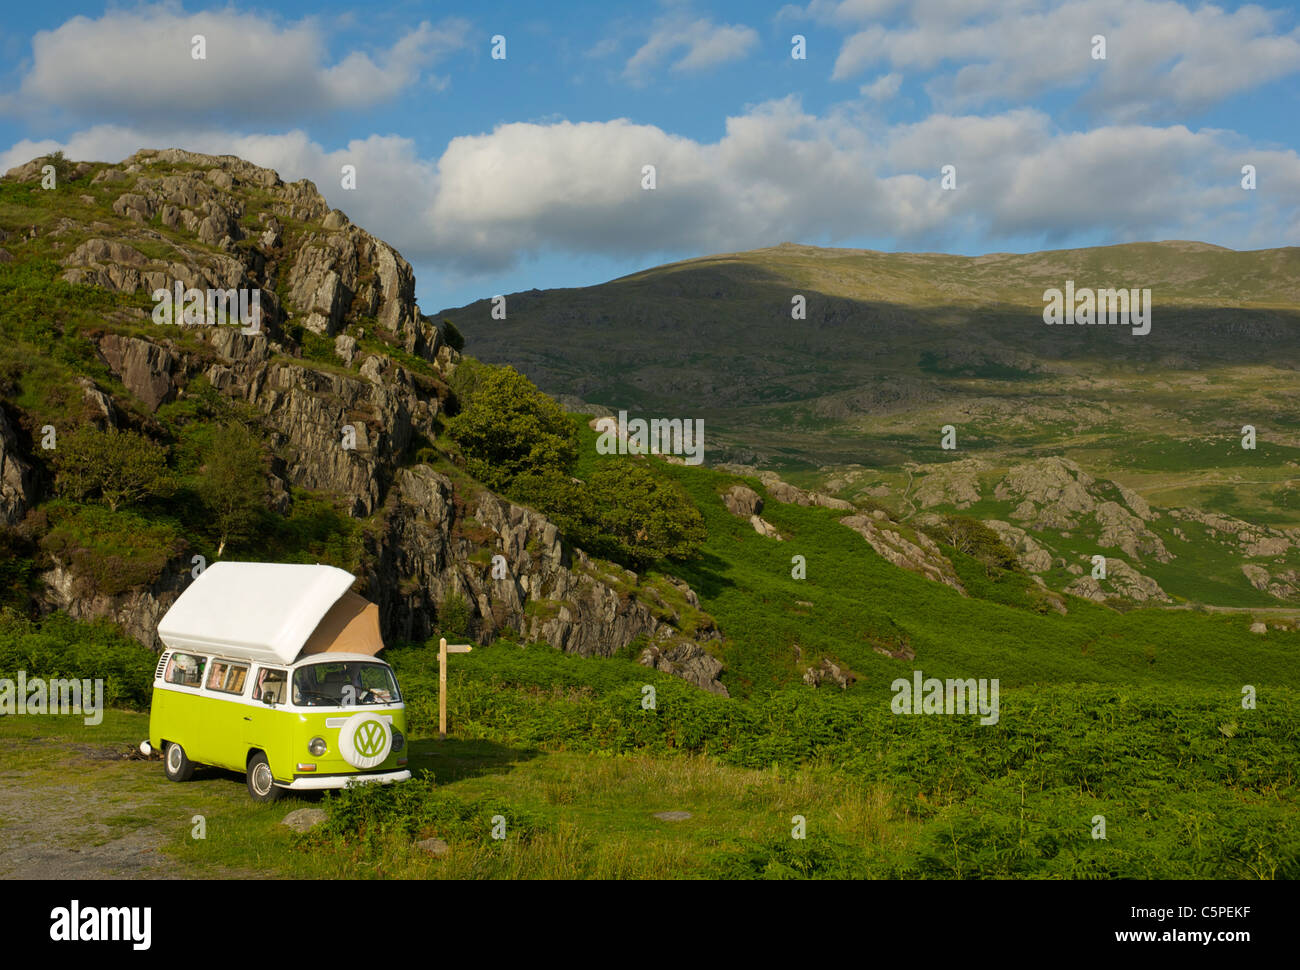 VW camper van parked in rocky landscape in the Duddon Valley, Lake District National Park, Cumbria, England UK - Stock Image